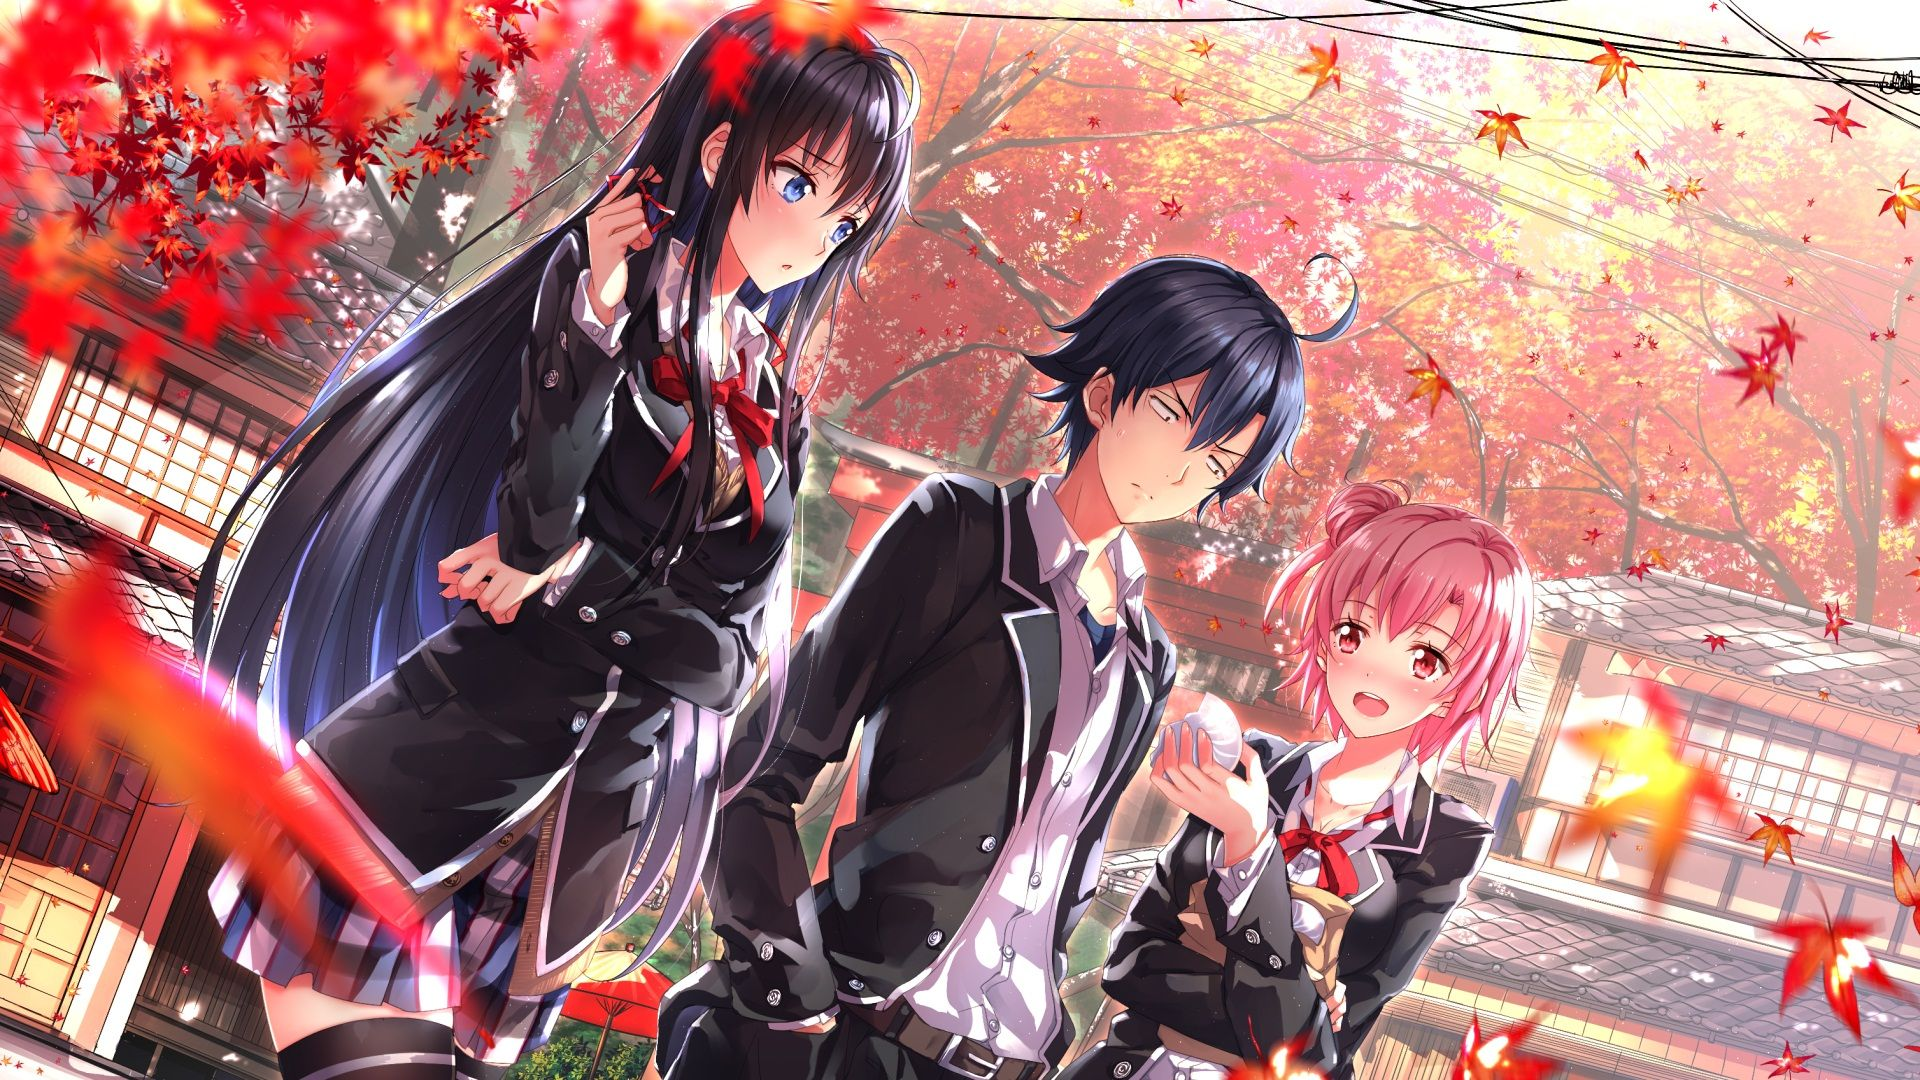 comedy Love Wallpaper : Yahari Ore no Seishun Love comedy wa Machigatteiru. Zoku Oregairu.Zoku Pinterest Anime